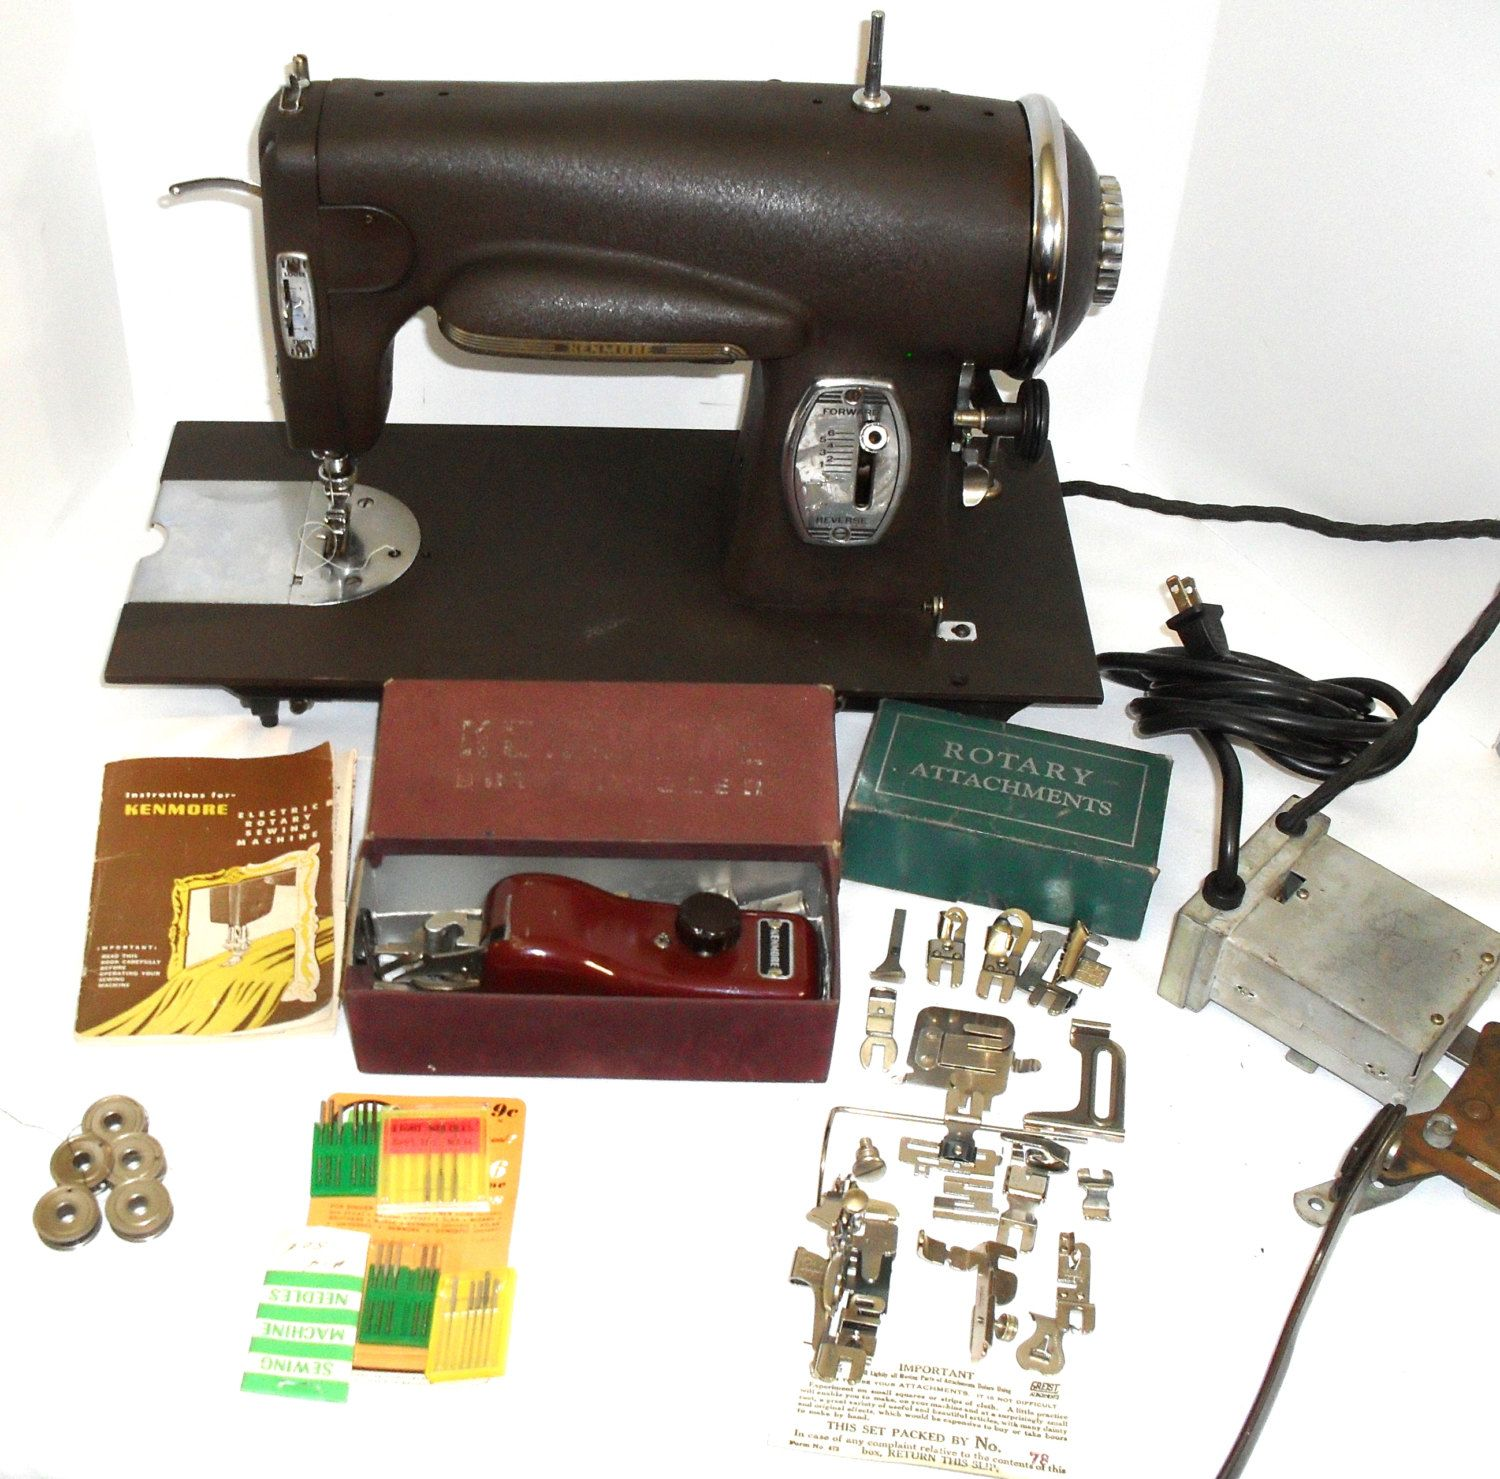 1940s kenmore 95 rotary heavy duty sewing machine model 117 959 w buttonholer manual needles bobbins and attachments serviced ready to sew by  [ 1500 x 1479 Pixel ]